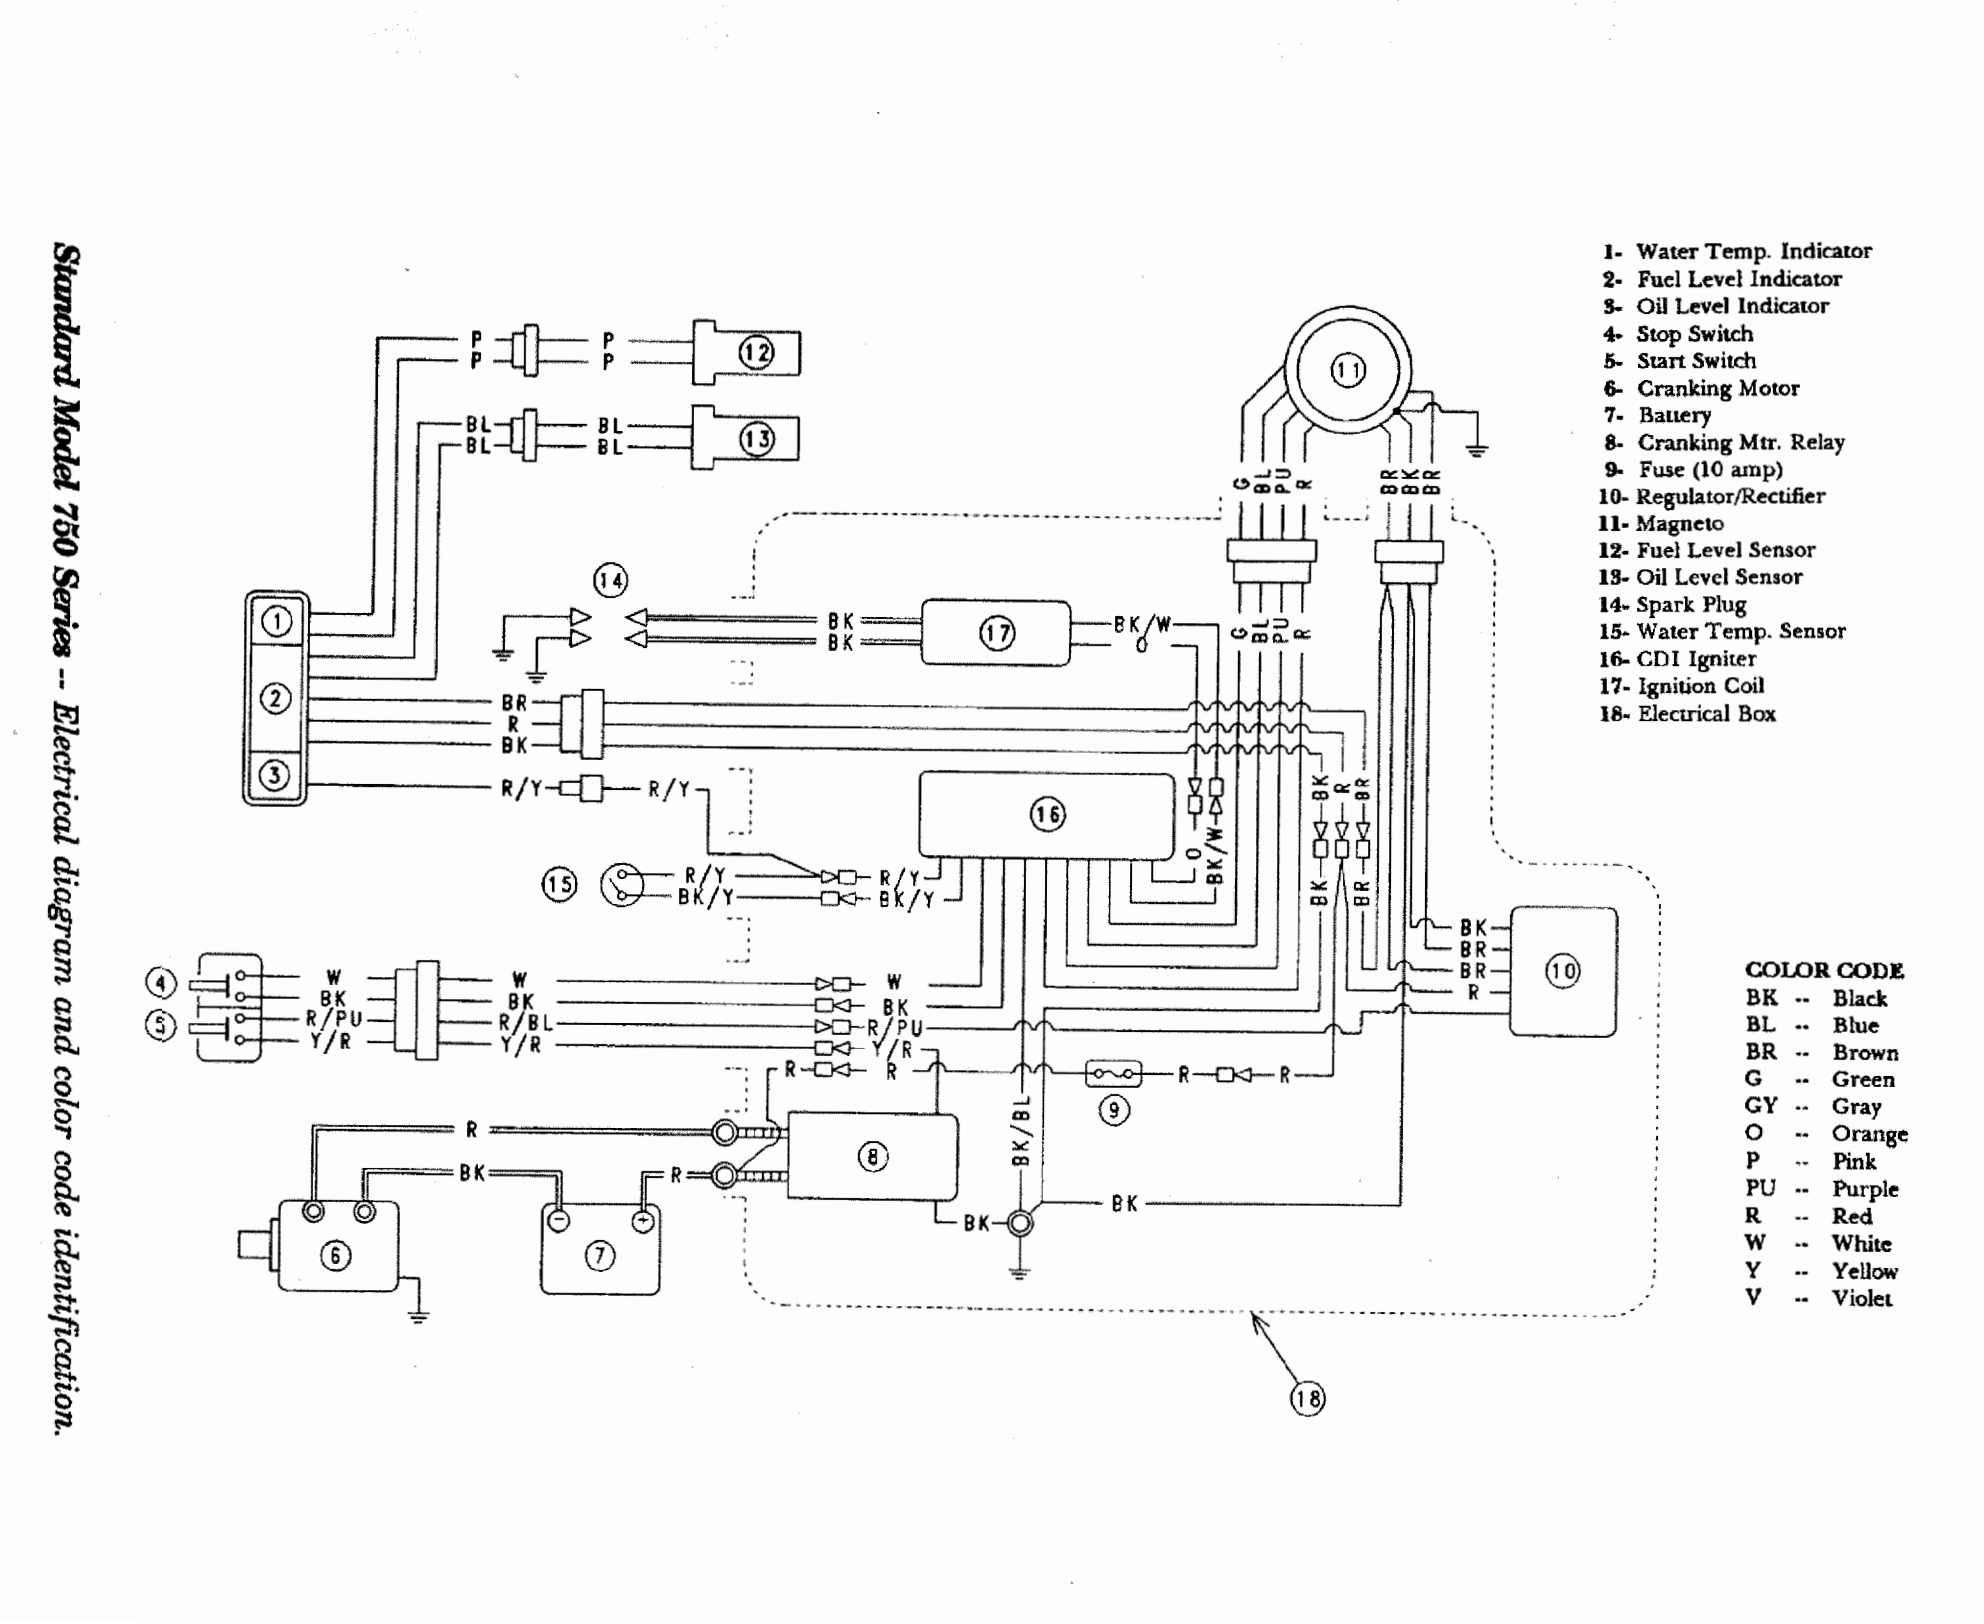 Wet Jet Wiring Diagram : Rs 6038 Wiring Diagram Likewise